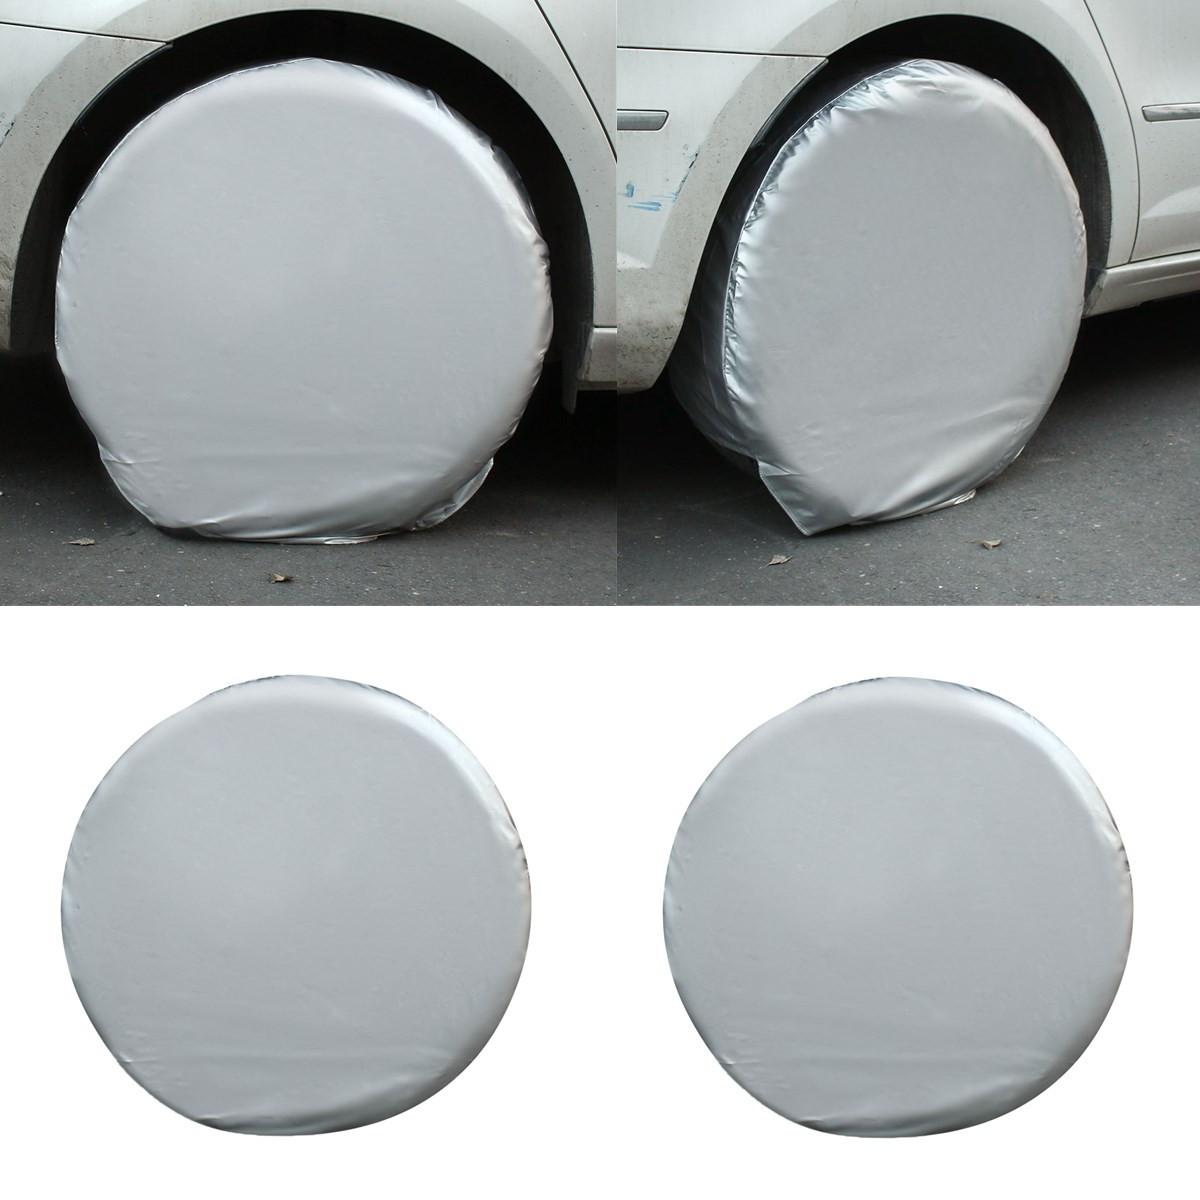 4PCs/Set 27''-29'' Car Auto Spare Wheels Tire Tyre Cover Heavy Duty Car Waterproof Tire Cover For RV Truck Trailer Motorhome pvc car spare 15 tire tyre cover black yellow white